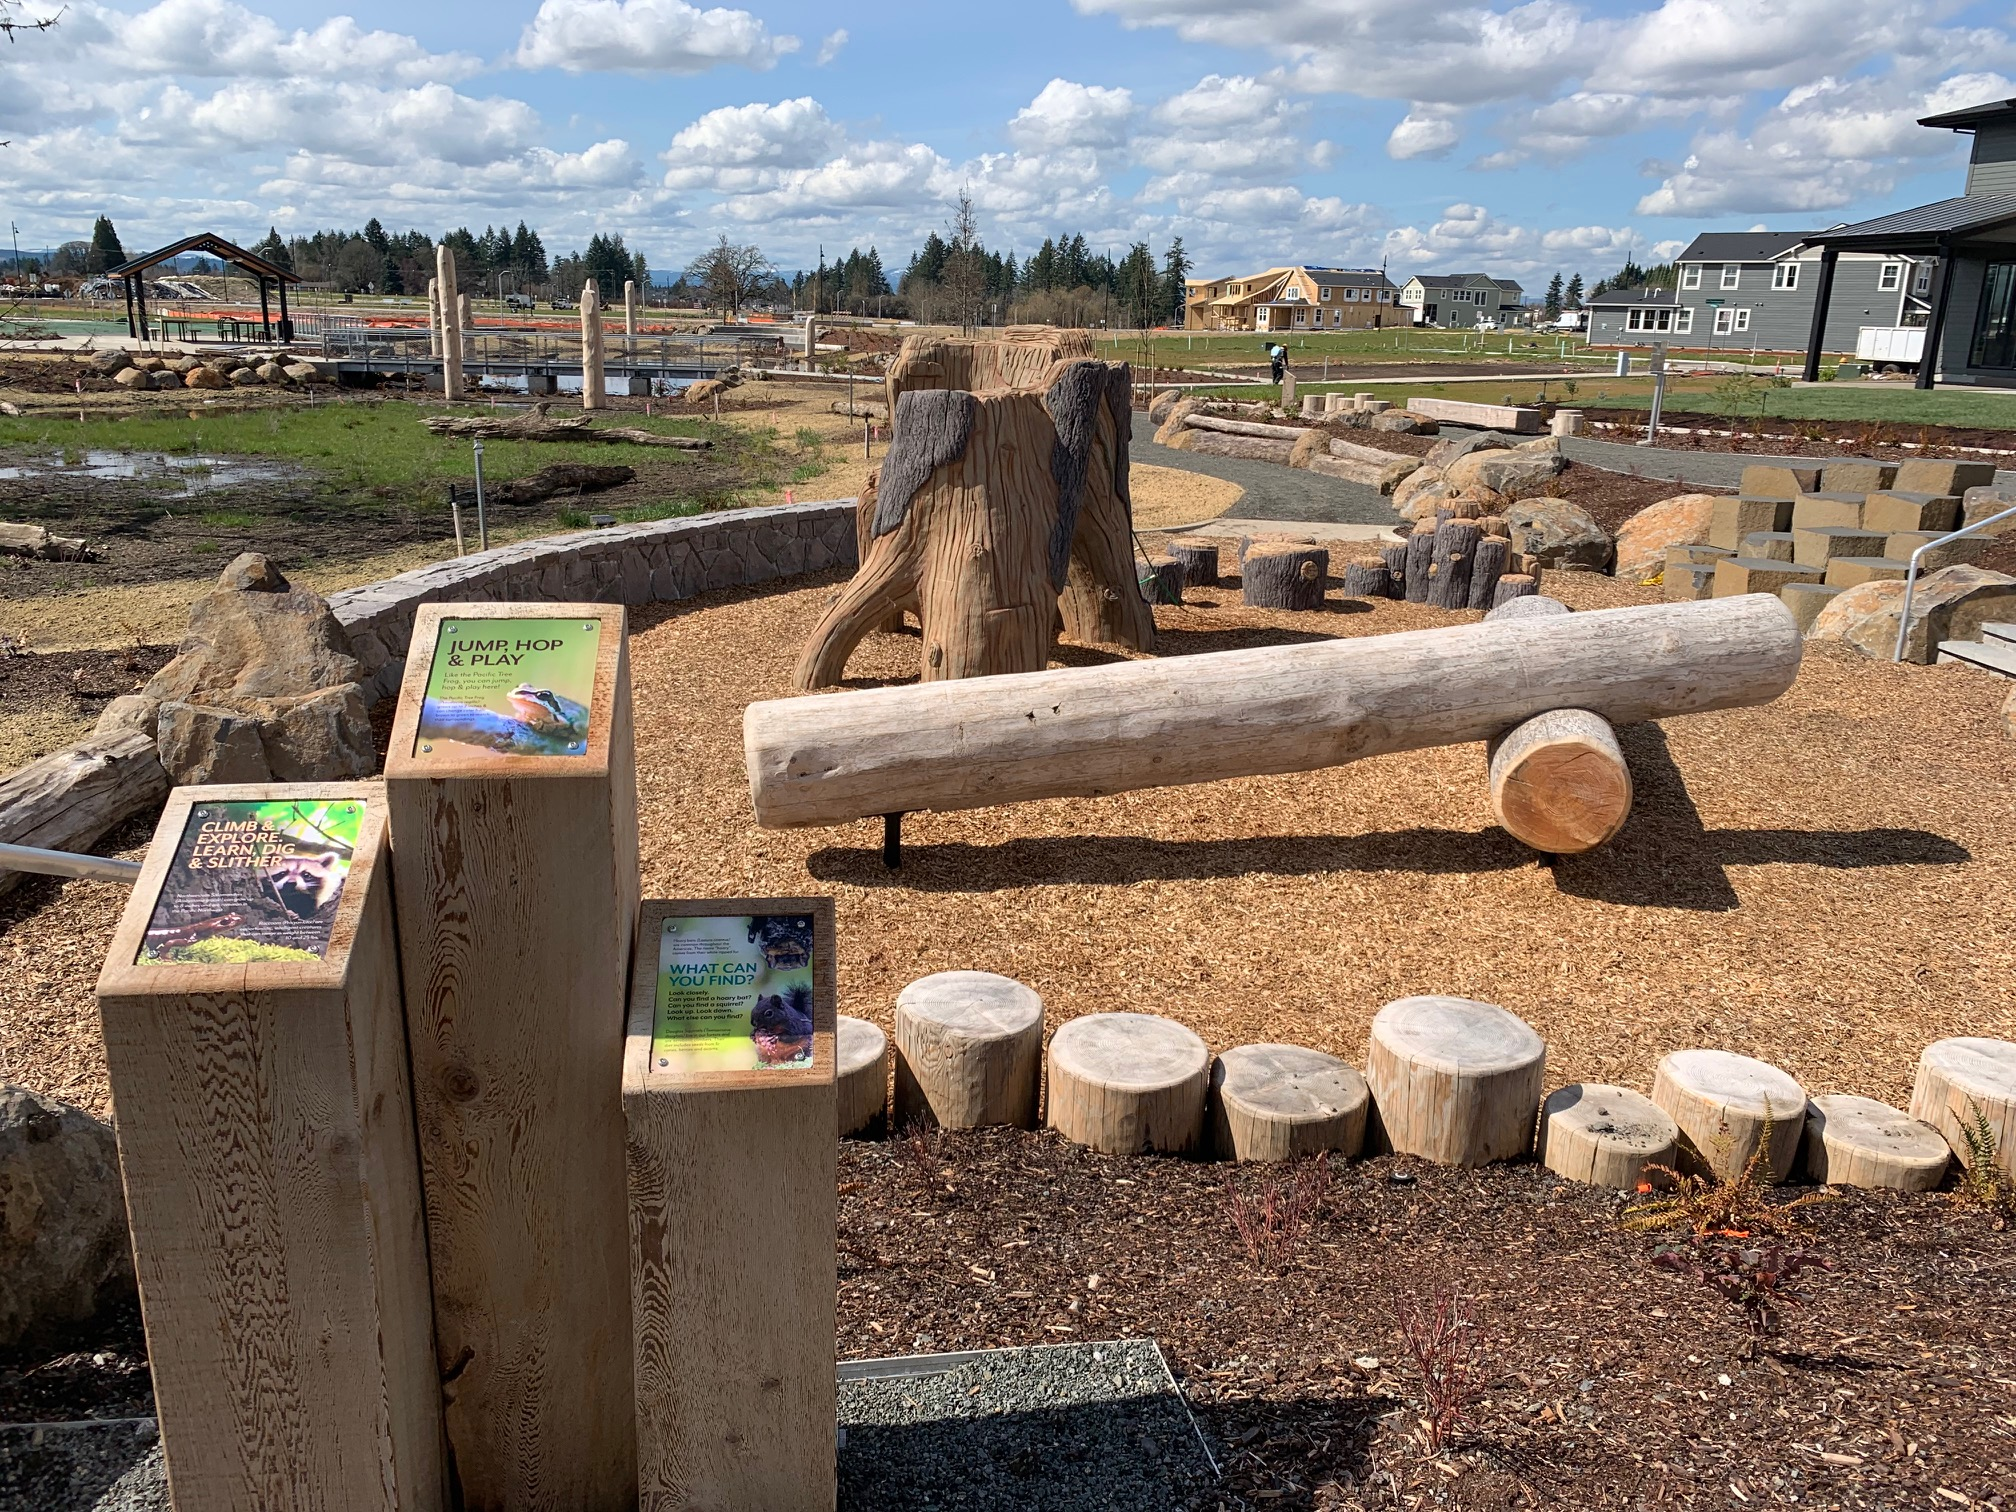 Interpretive signs in front of log climbers in wood chips on sunny day